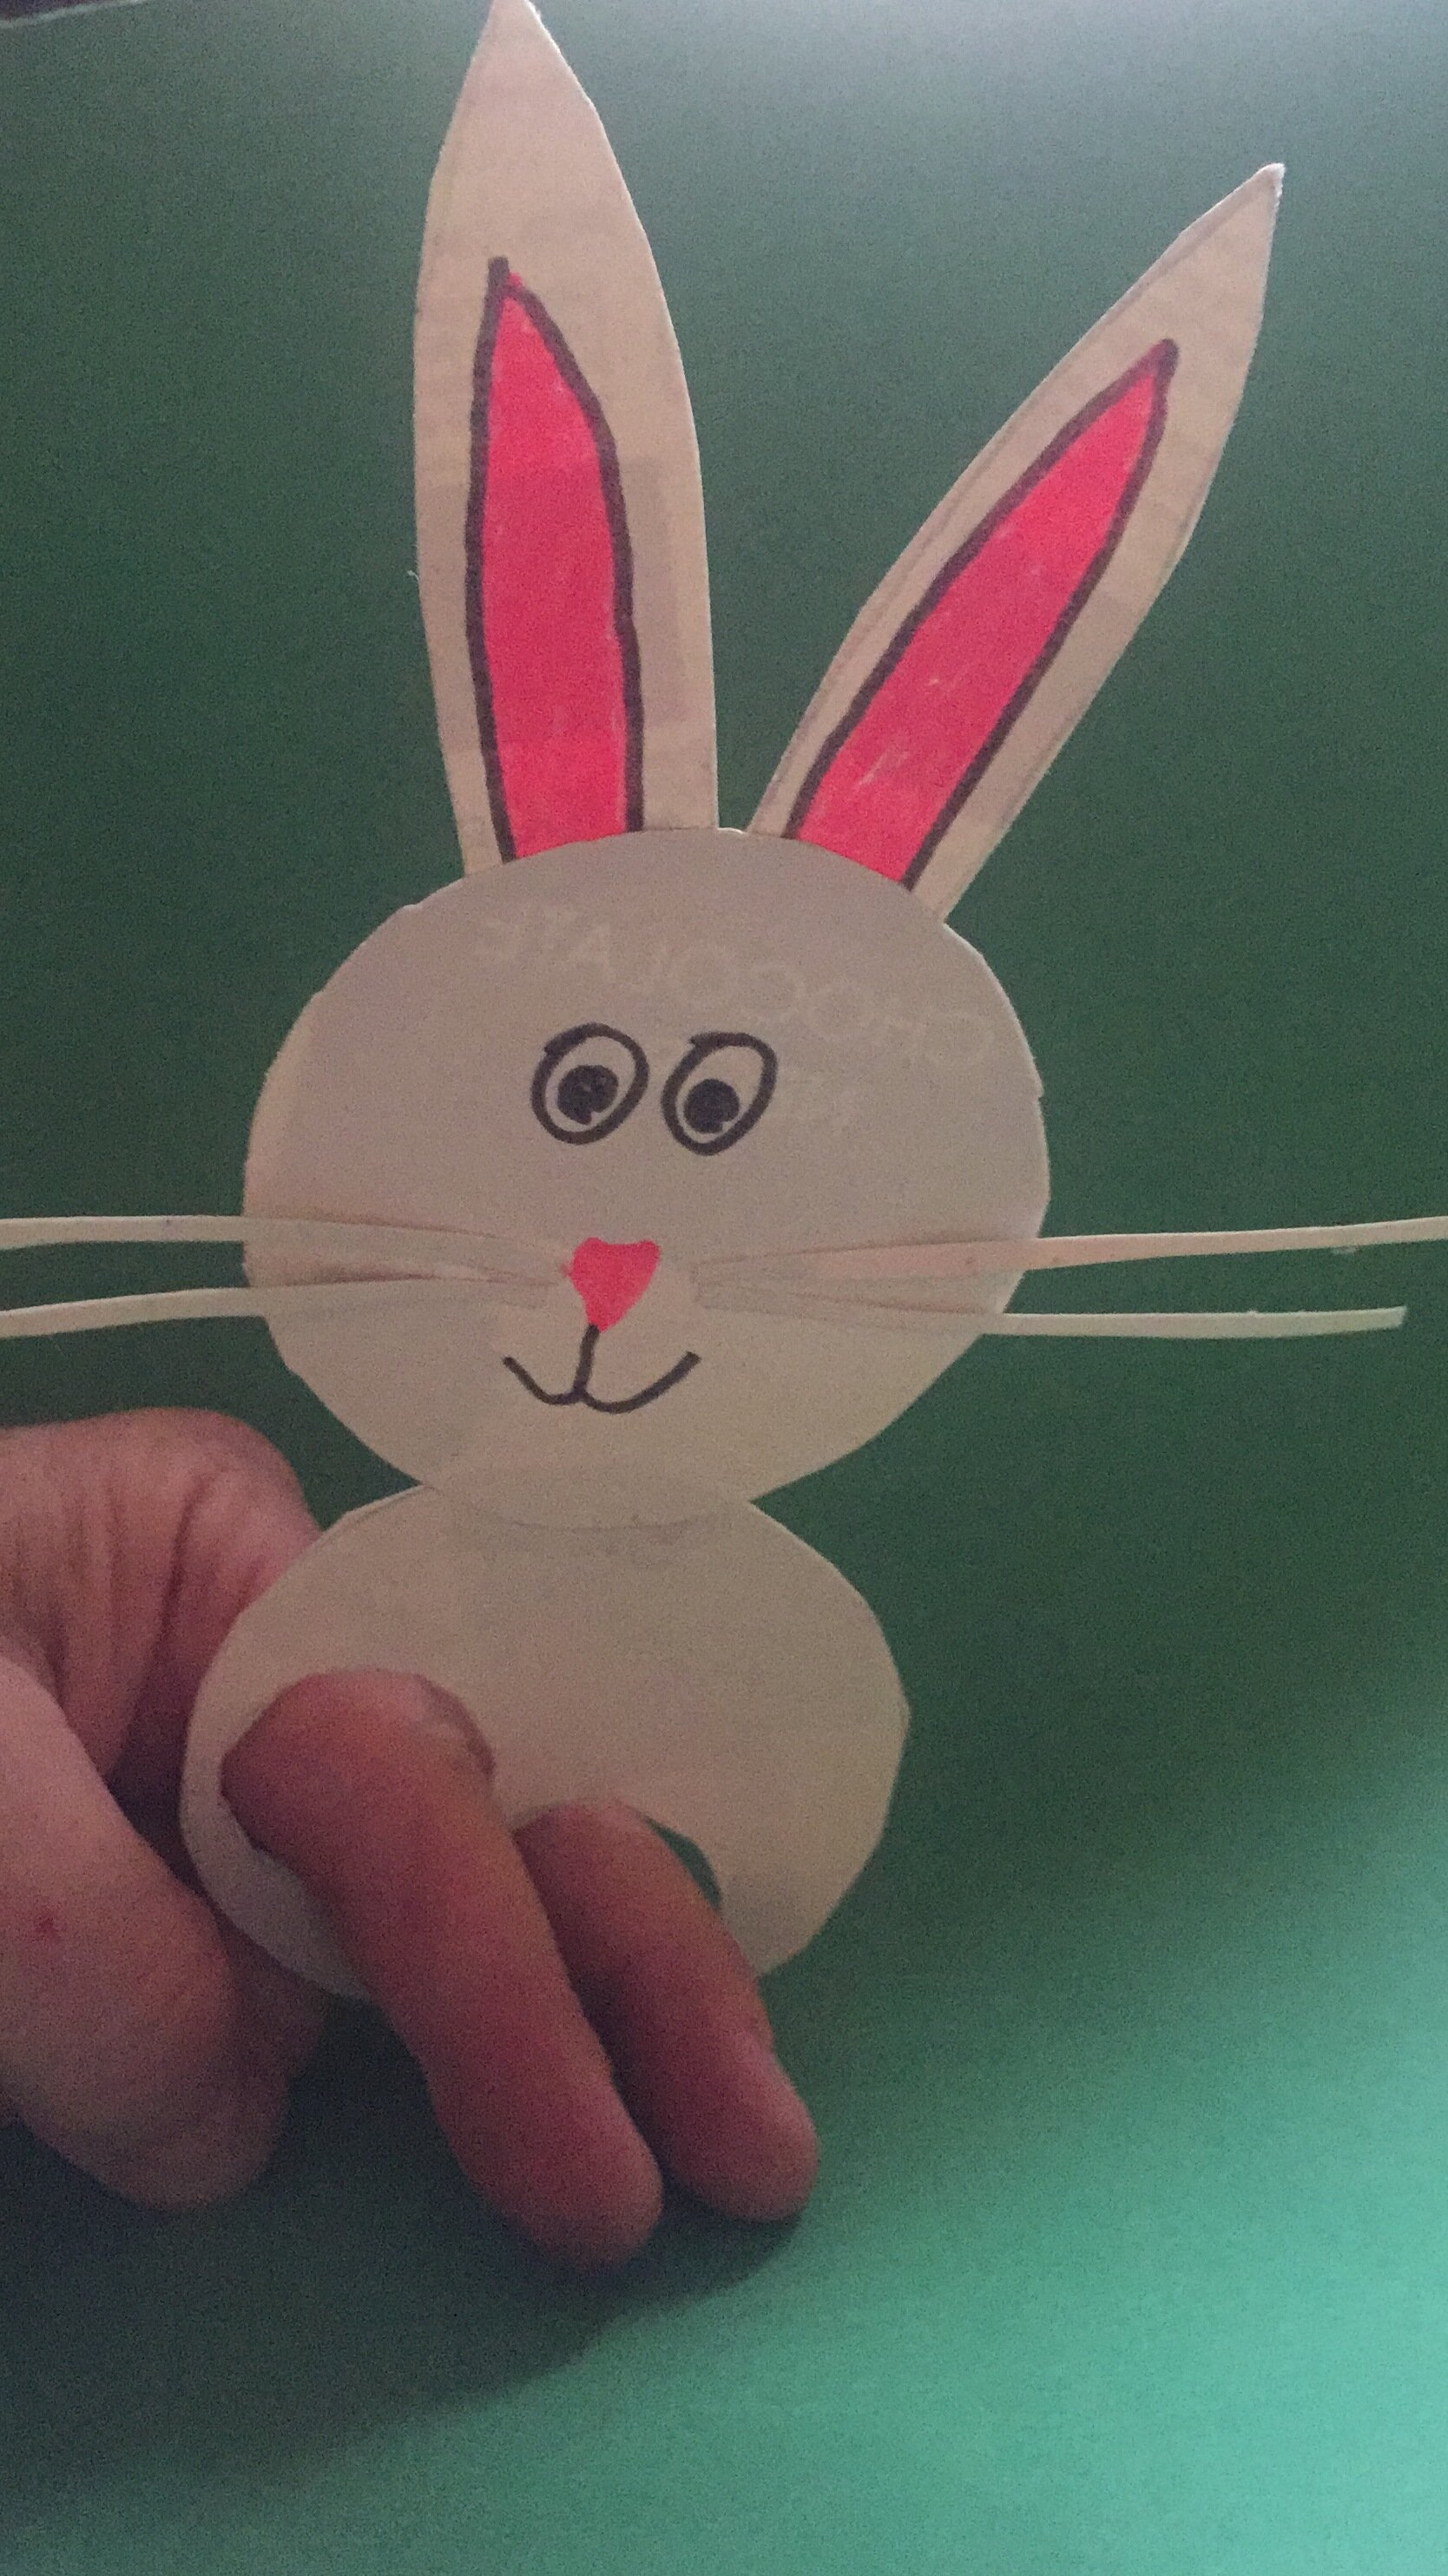 Simple rabbit finger puppet made from recycled cardboard